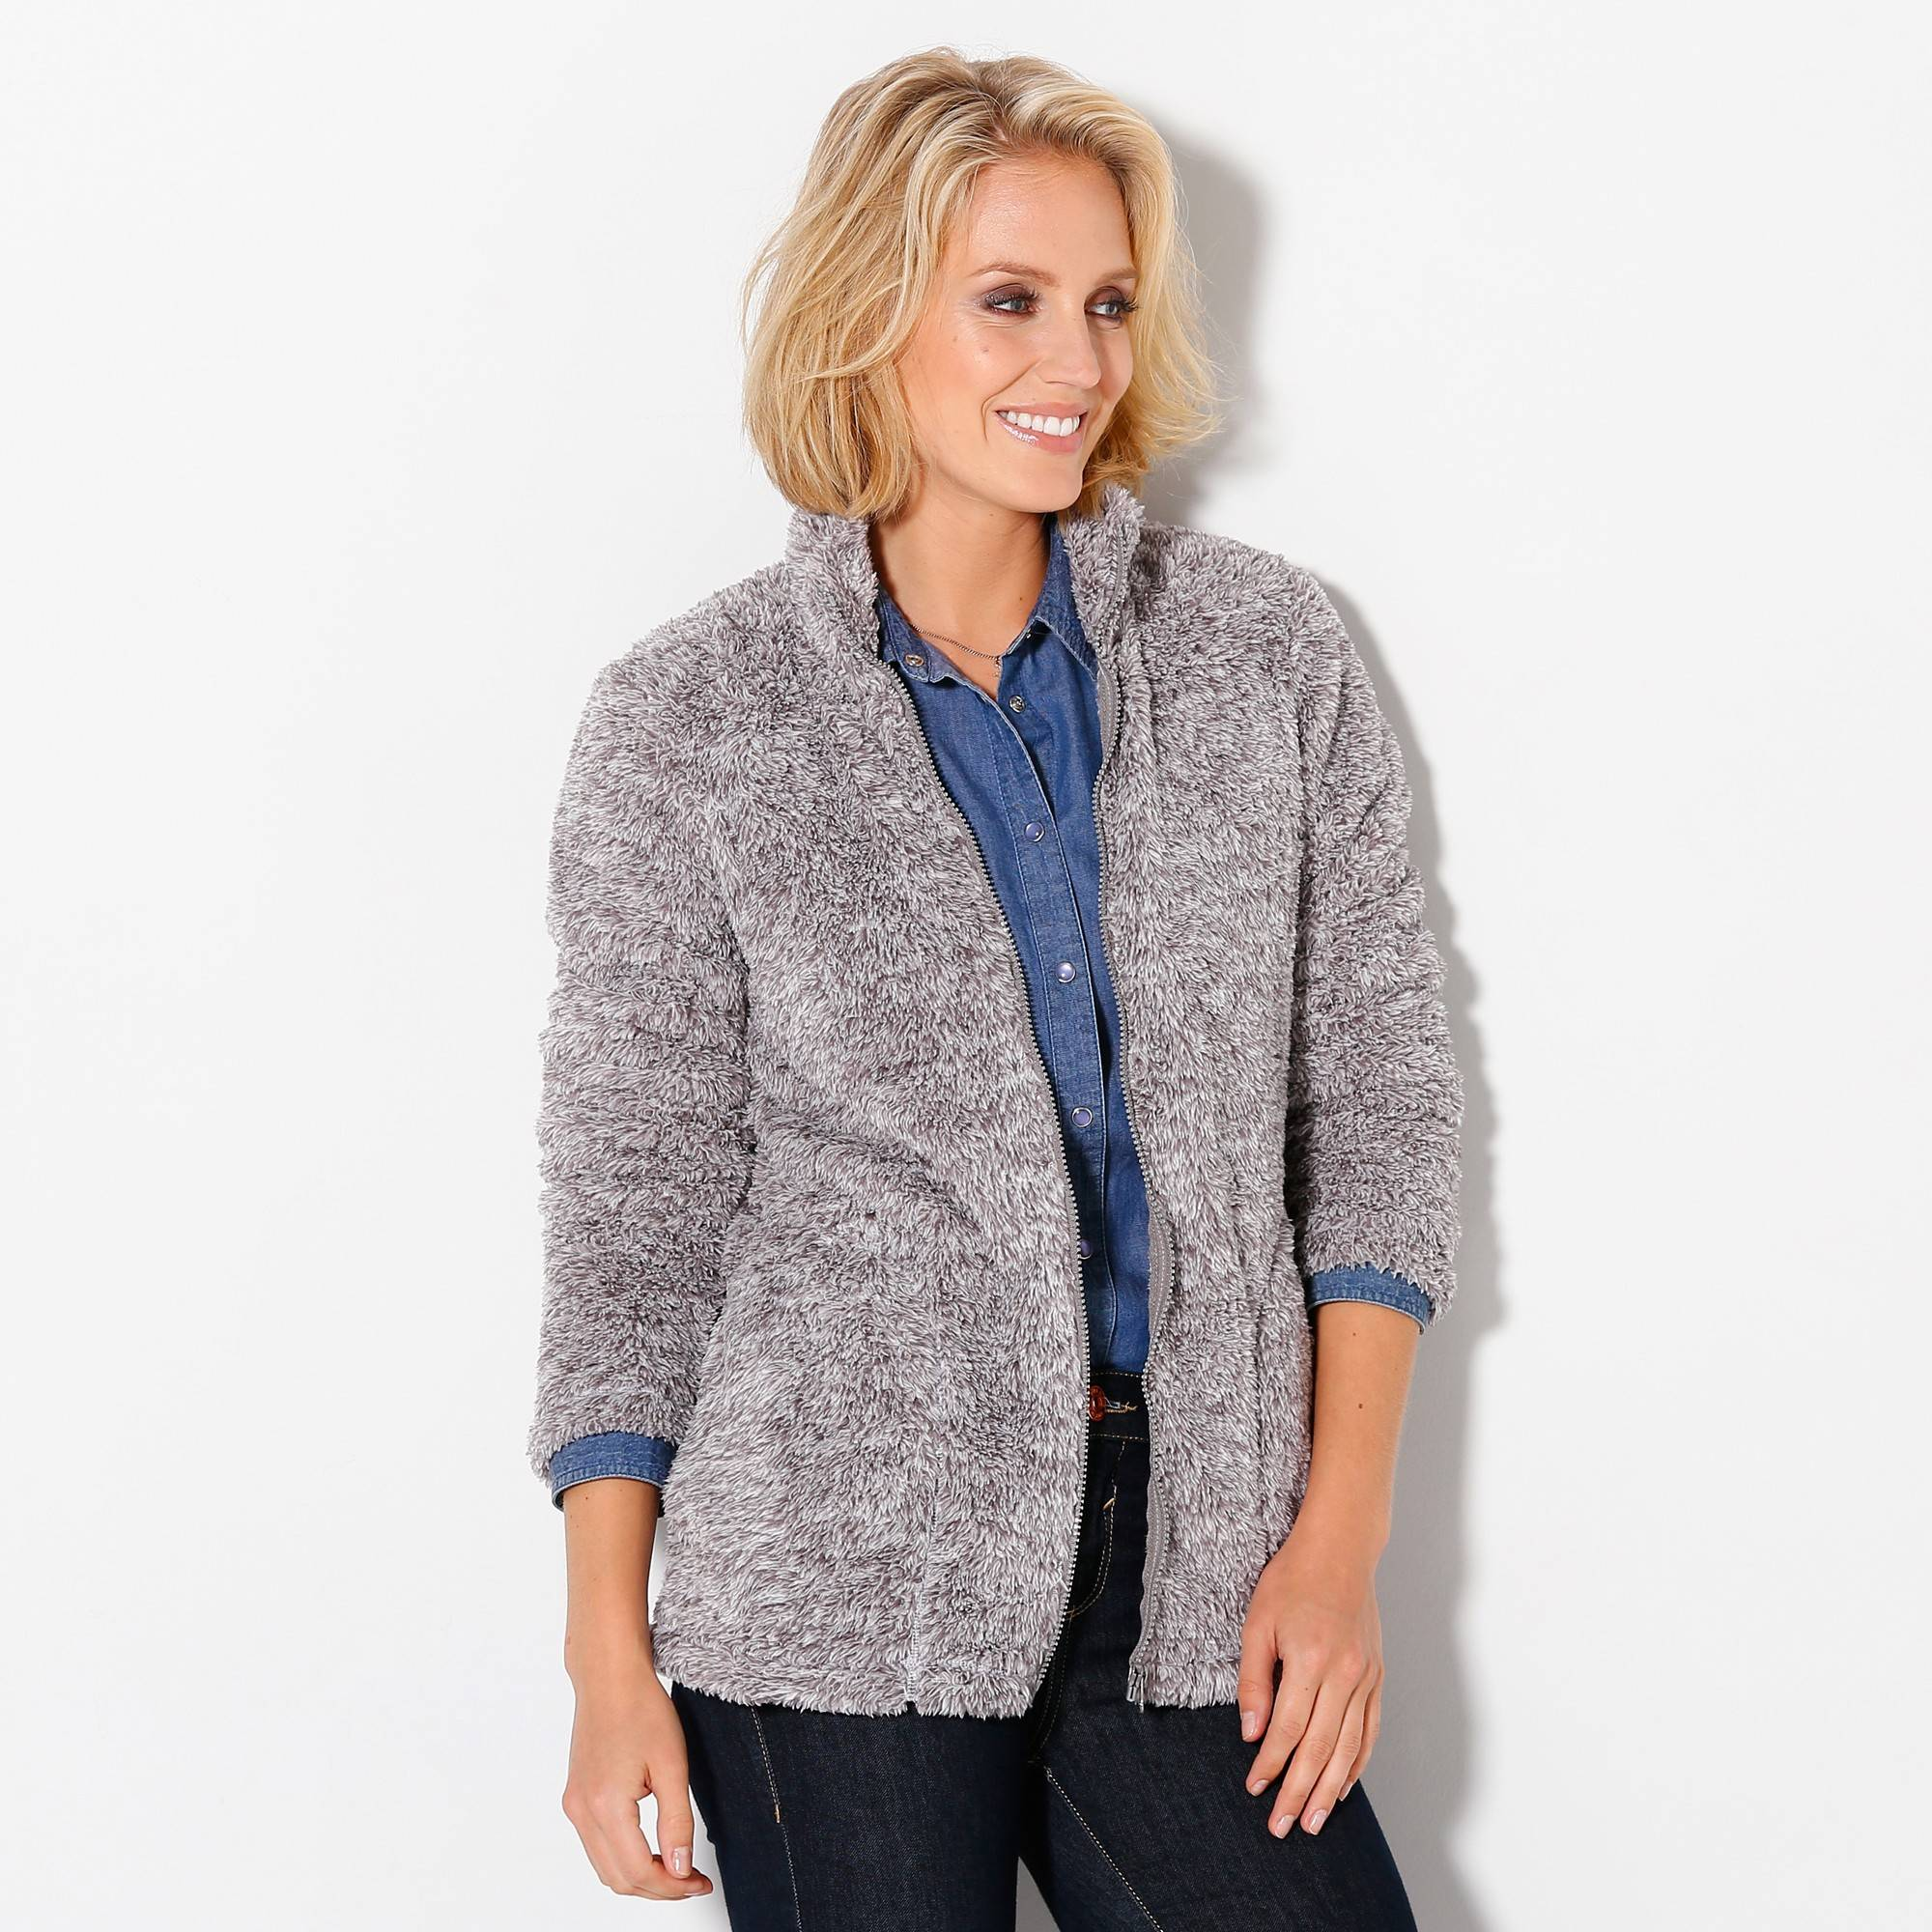 Casual Collection Veste maille peluche - Gris - Taille : 50 - Blancheporte